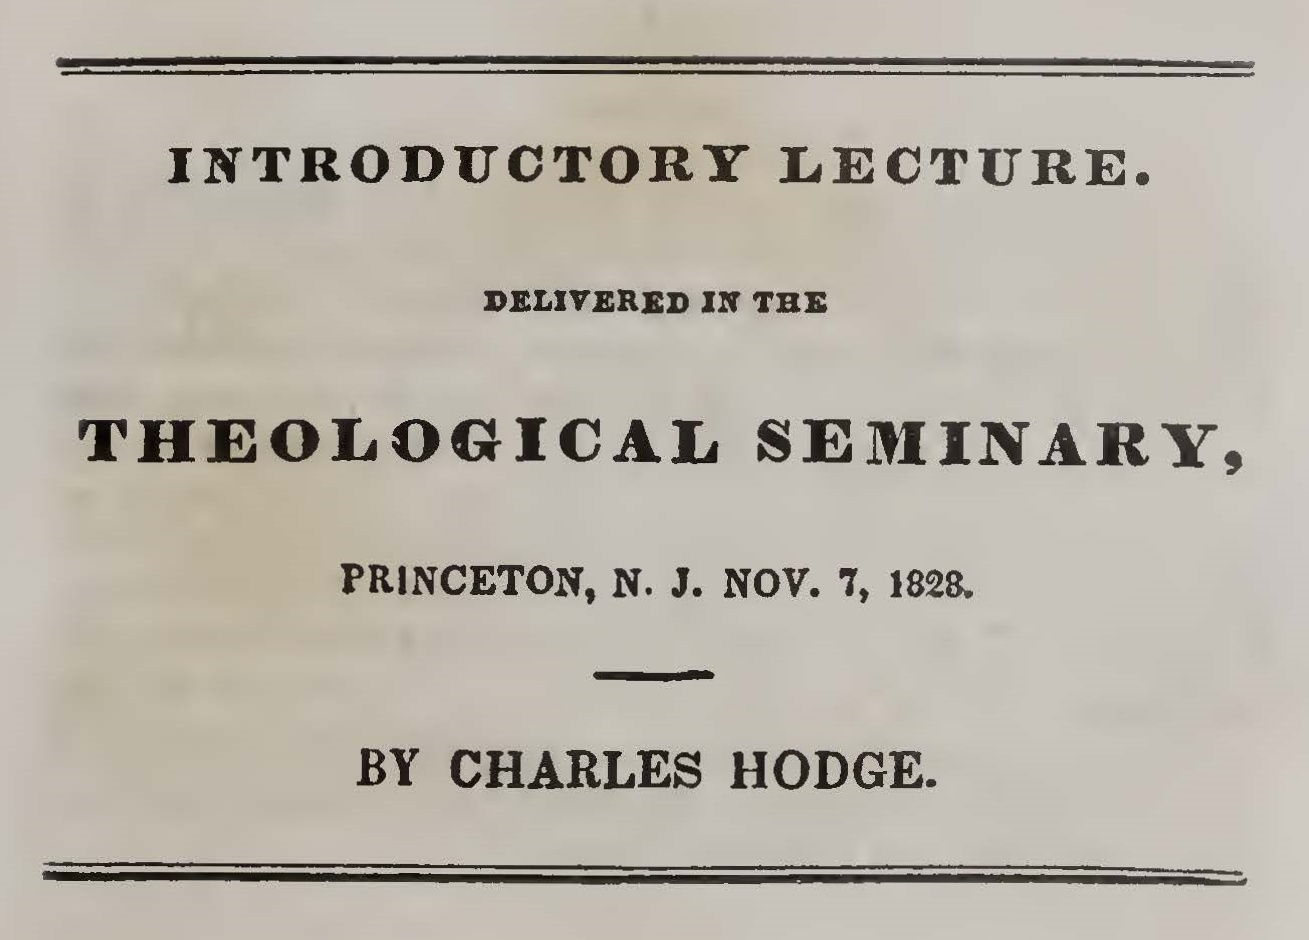 Hodge, Charles, Introductory Lecture Title Page.jpg